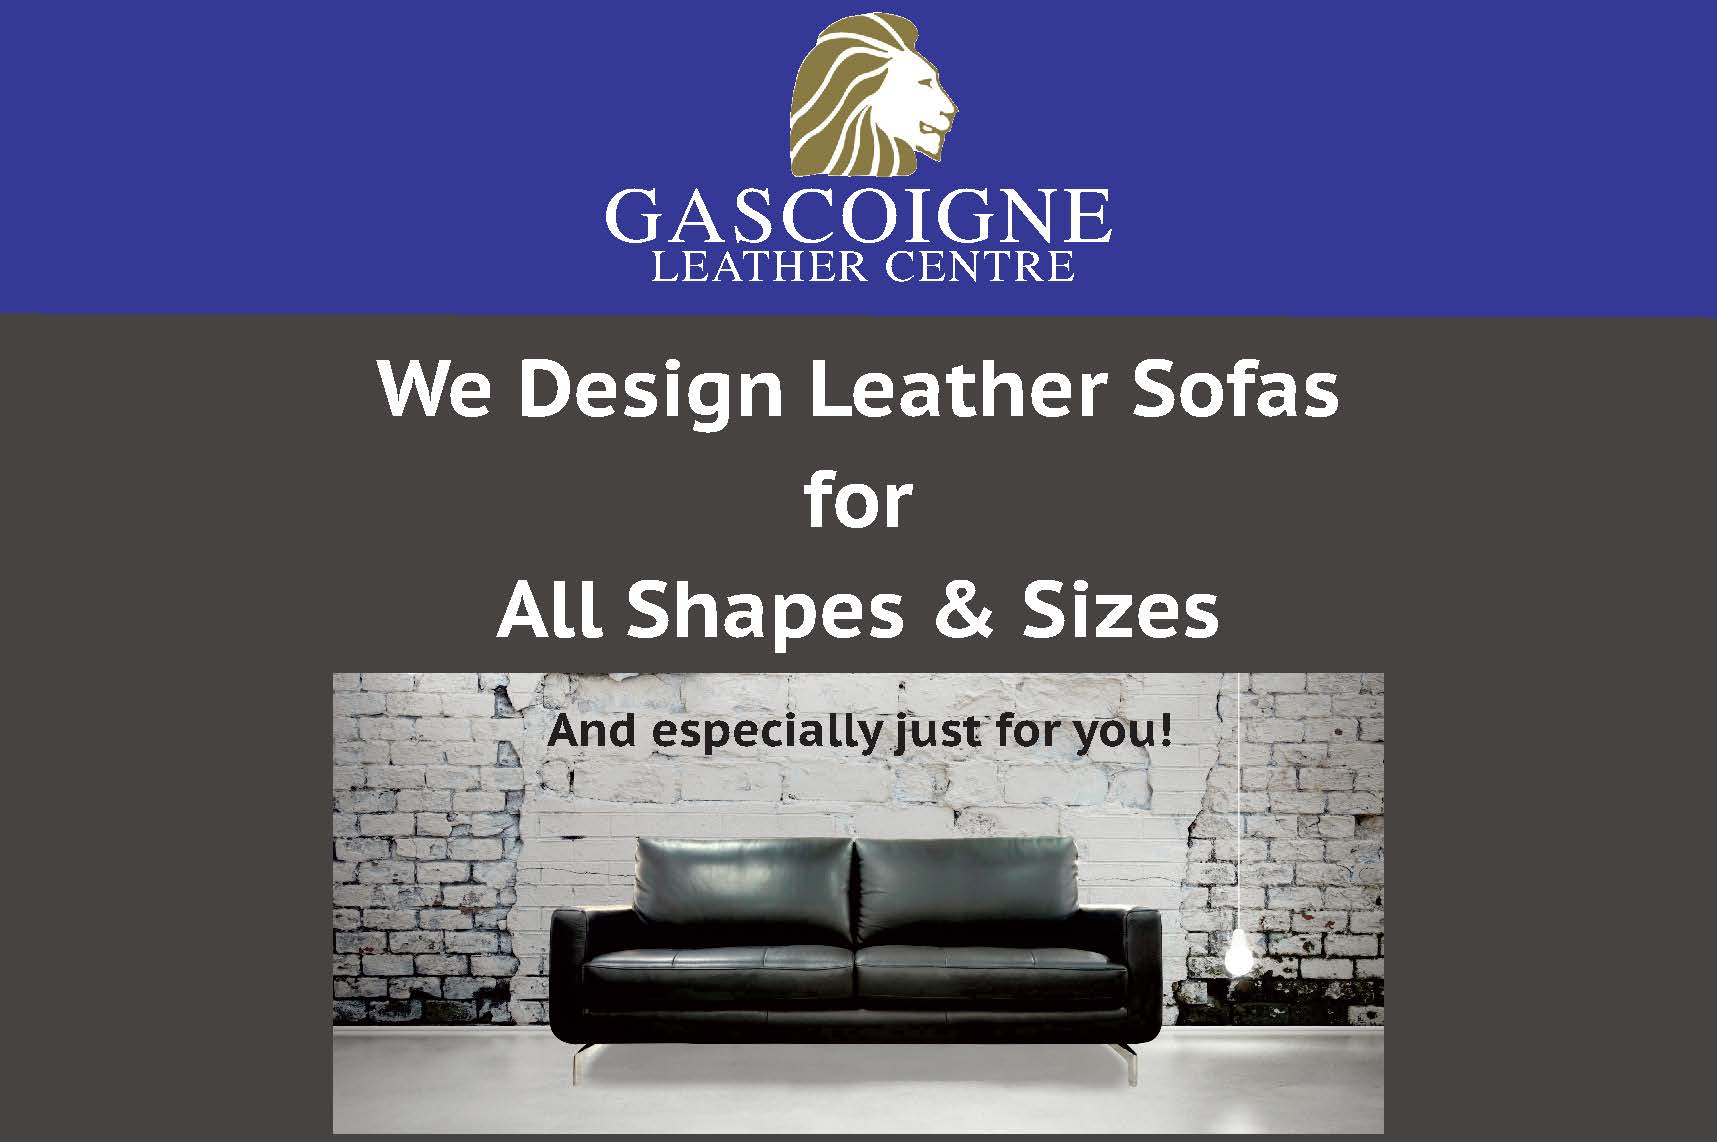 we design sofas for all shapes and sizes